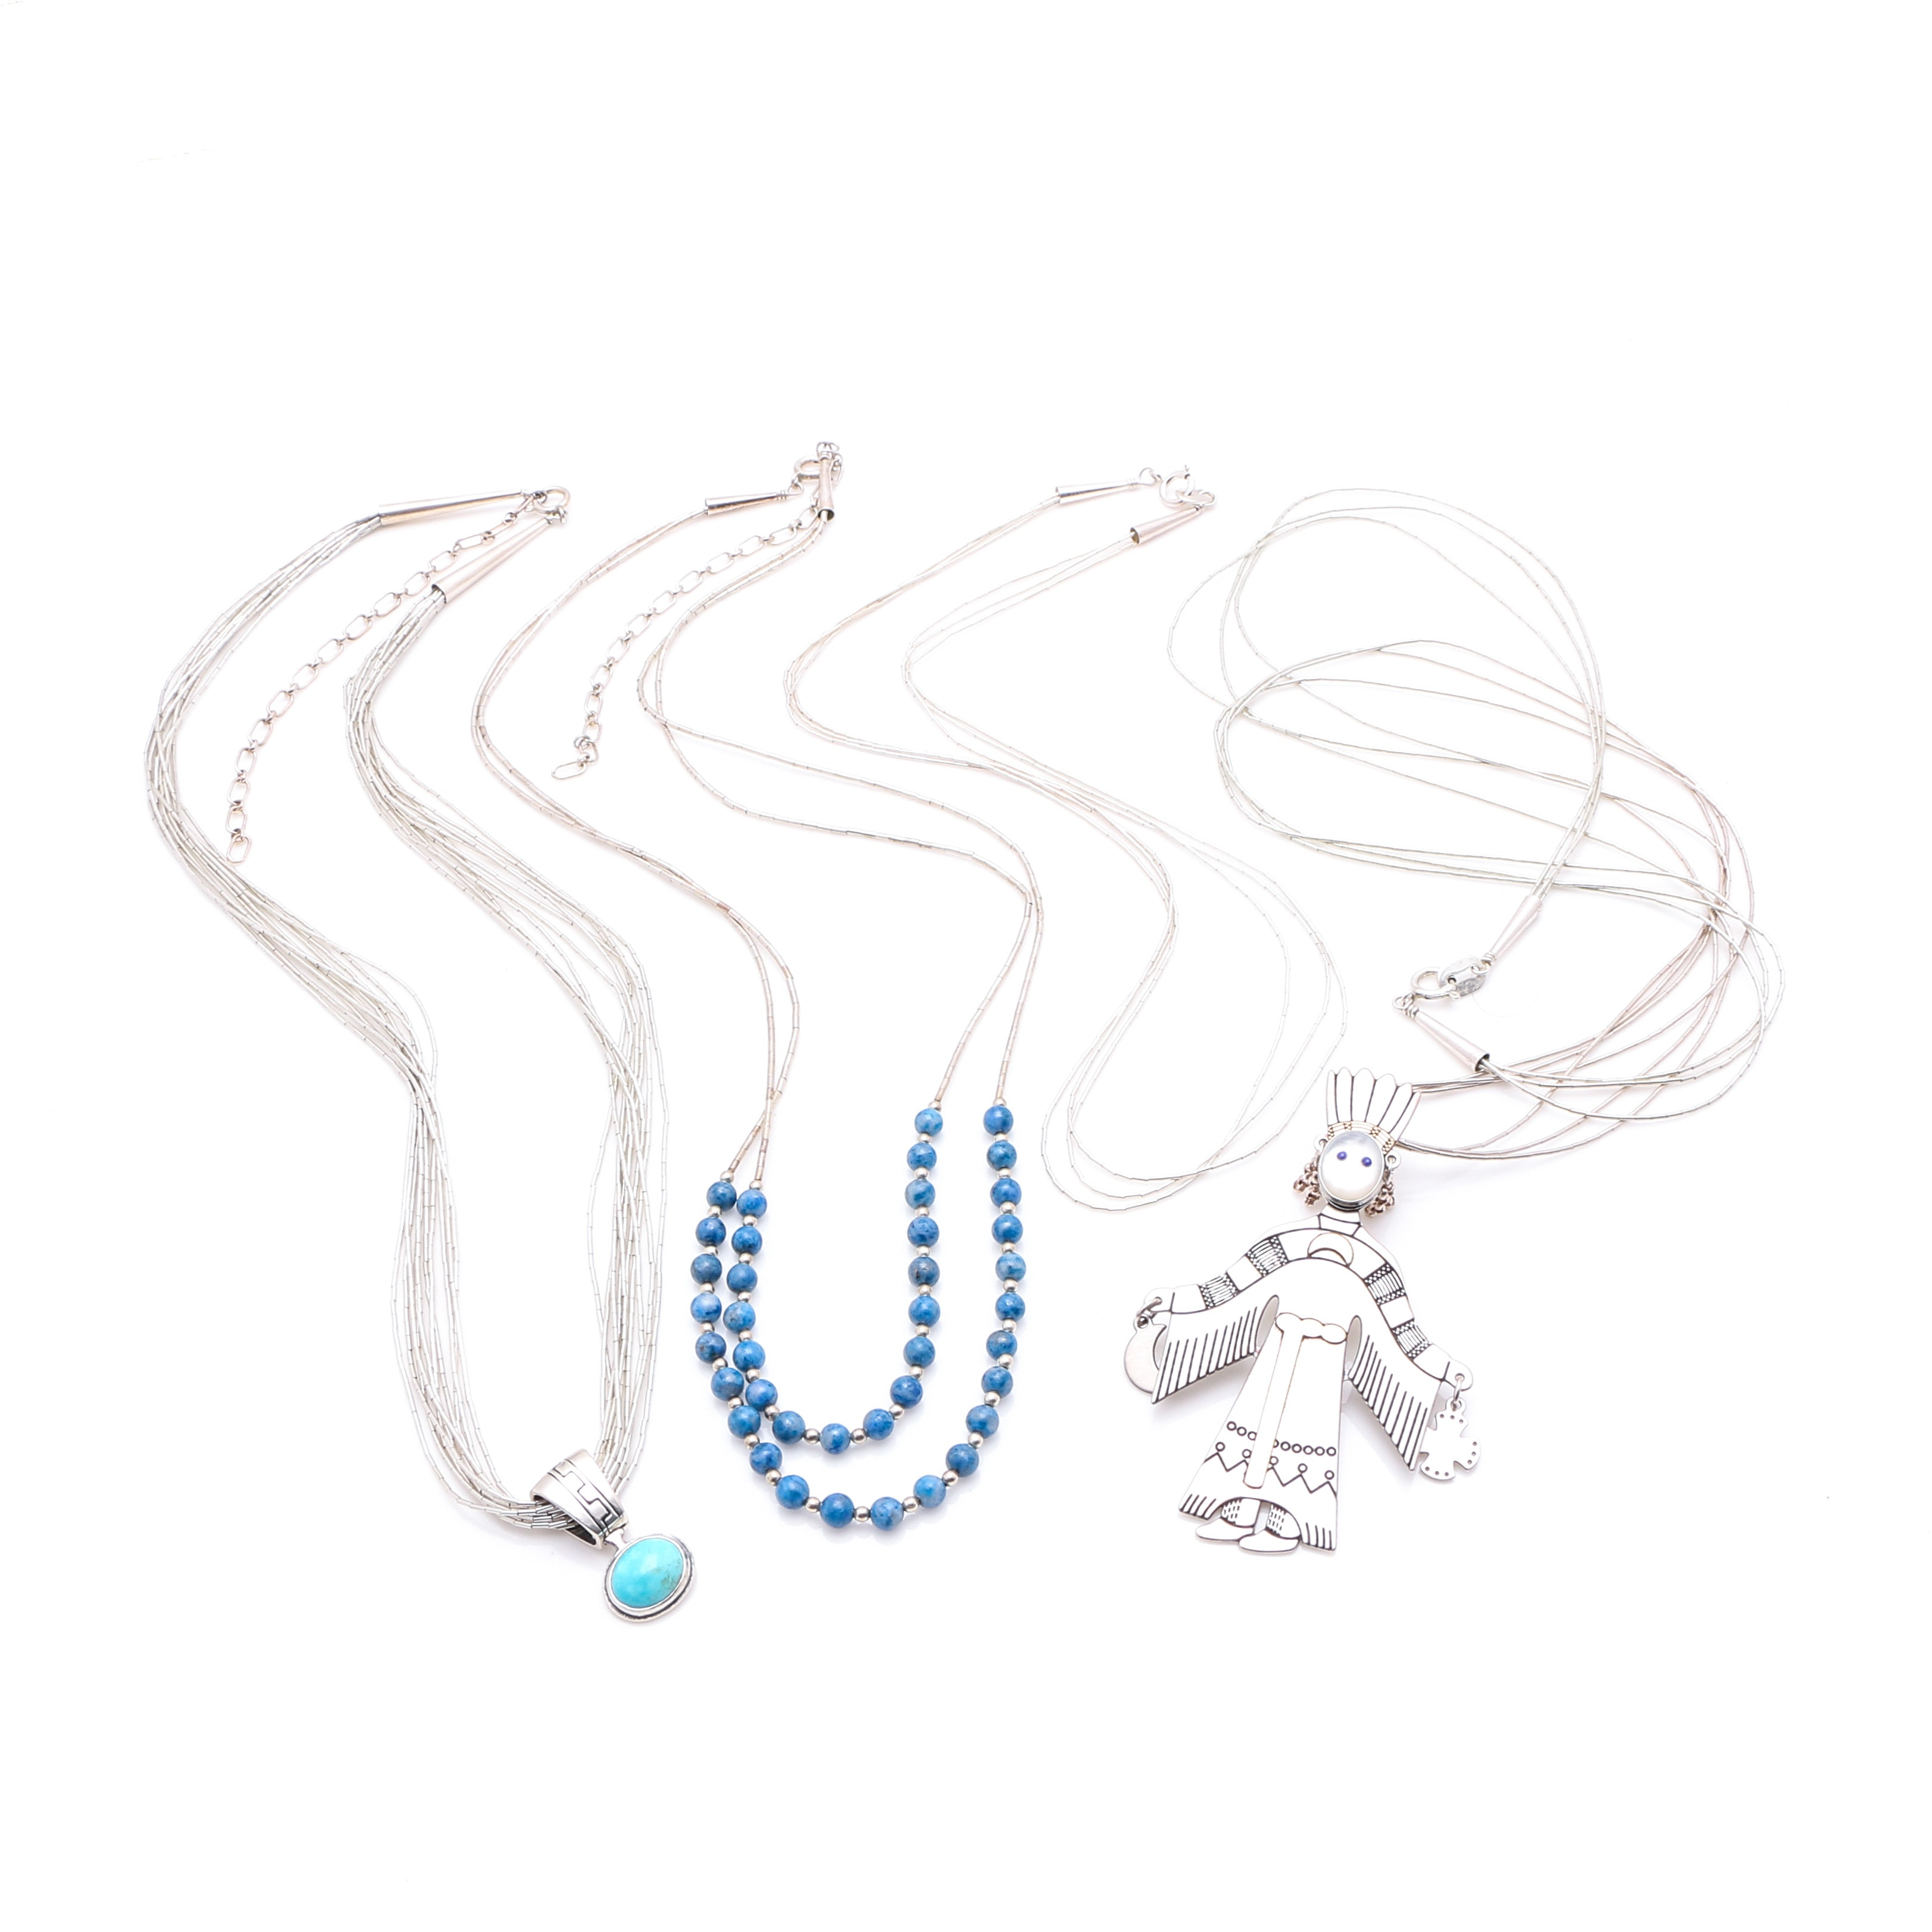 Assortment of Carolyn Pollack Relios Collection Liquid Silver Necklaces